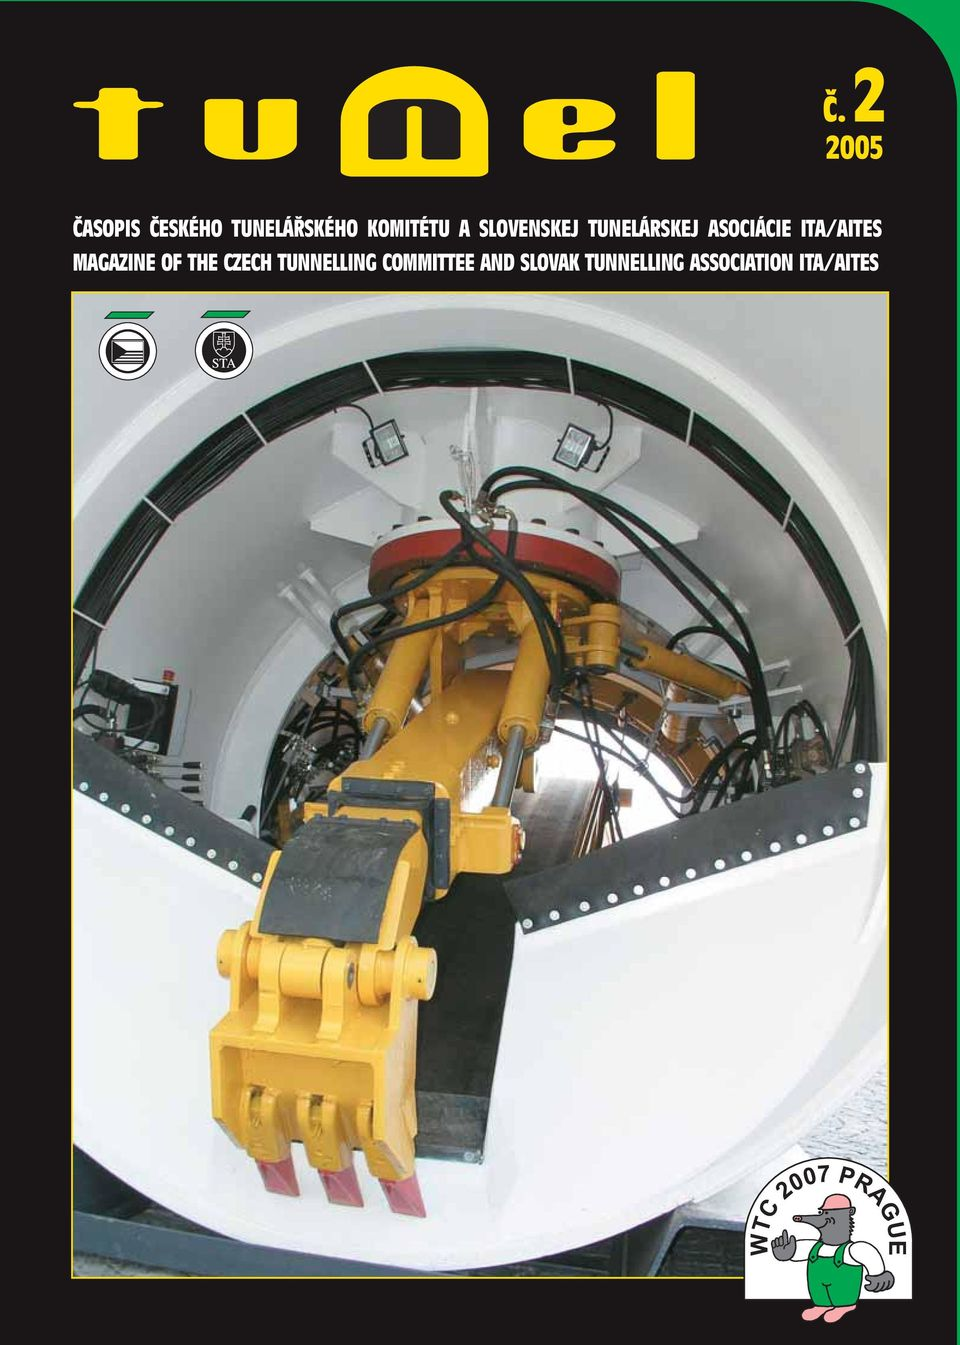 ITA/AITES MAGAZINE OF THE CZECH TUNNELLING